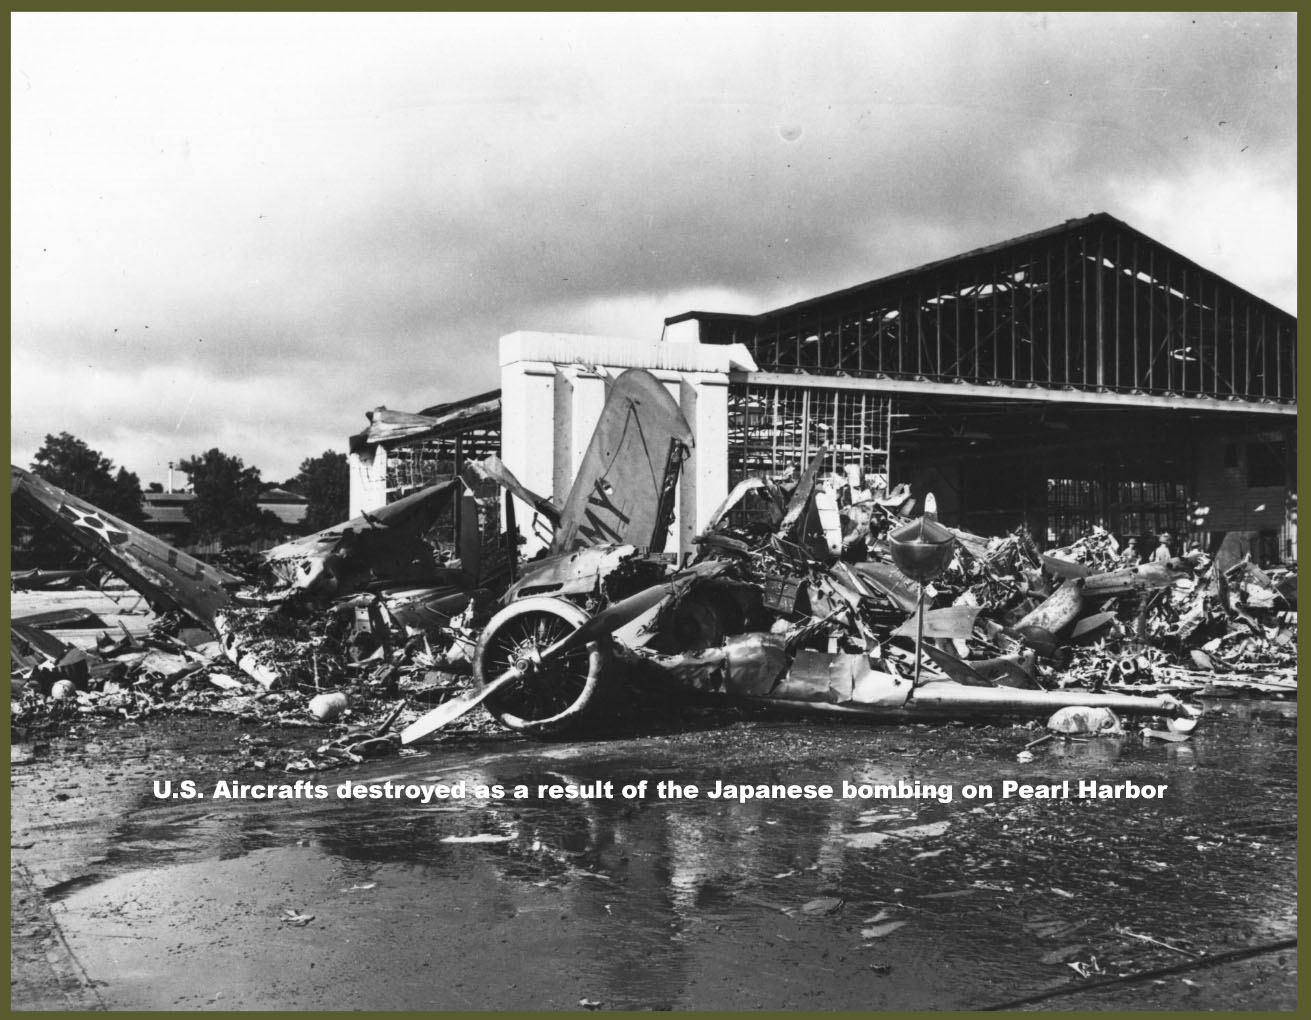 U.S. Aircraft Destroyed as a Result of the Japanese Bombing on Pearl Harbor